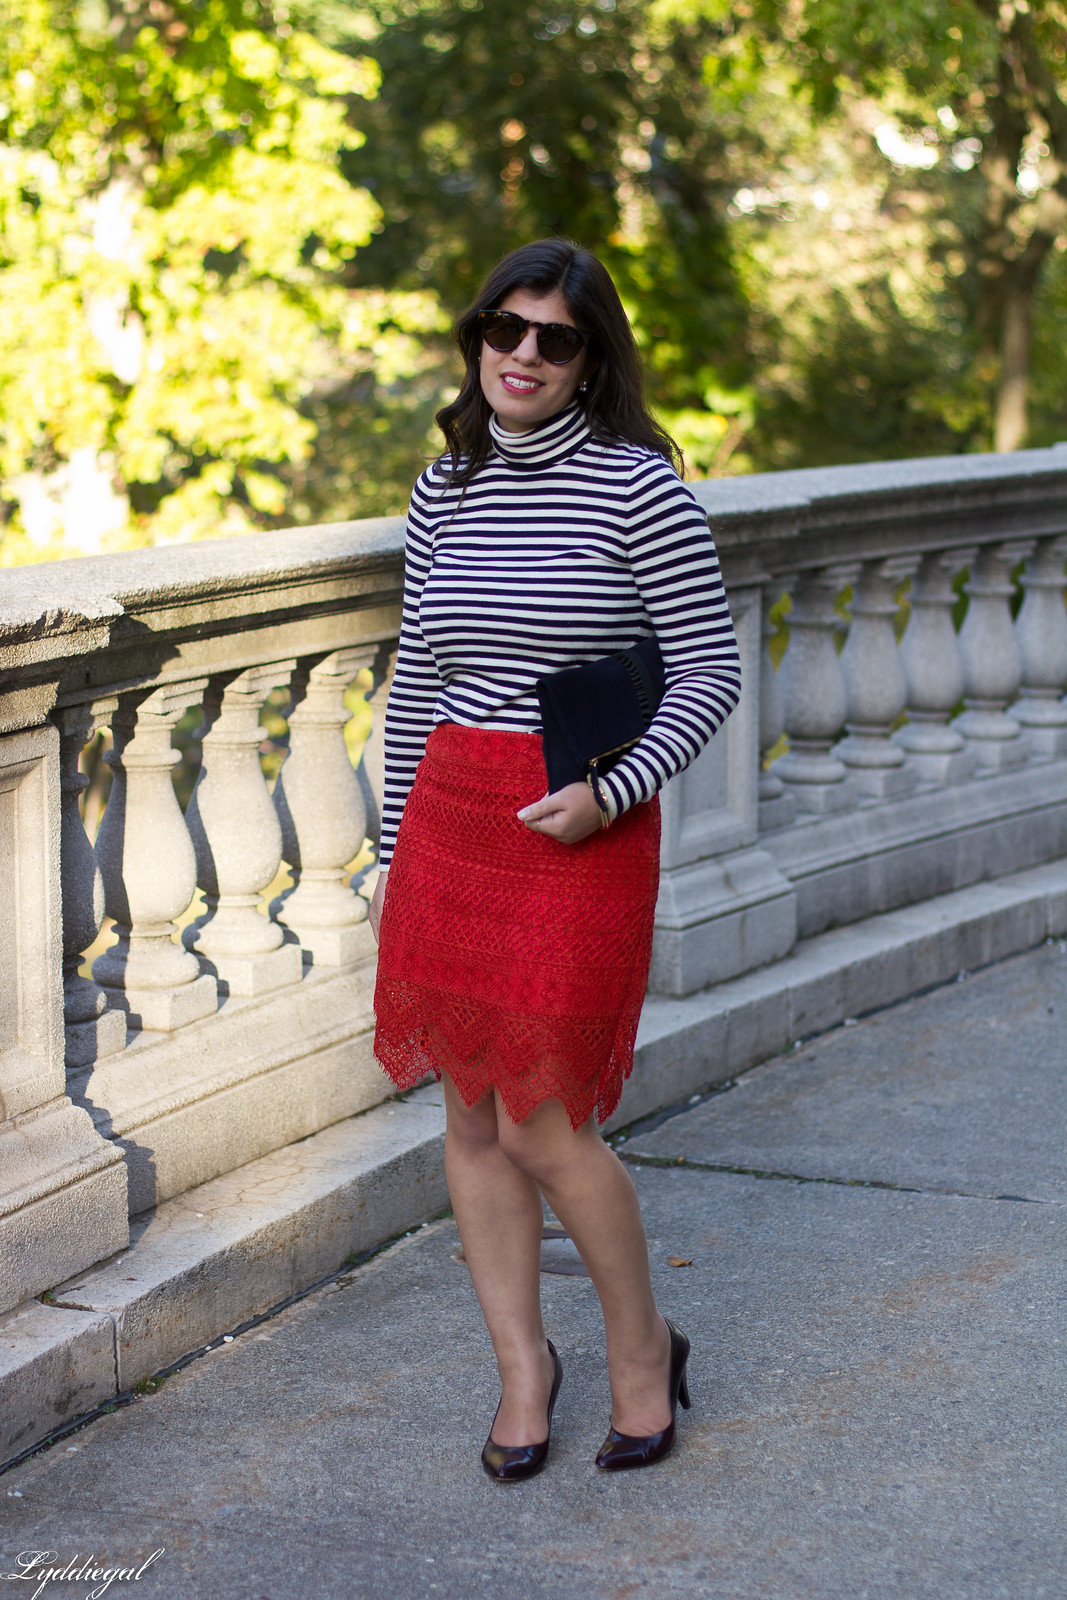 red lace skirt, striped shirt, navy clare v clutch, coach pumps-5.jpg